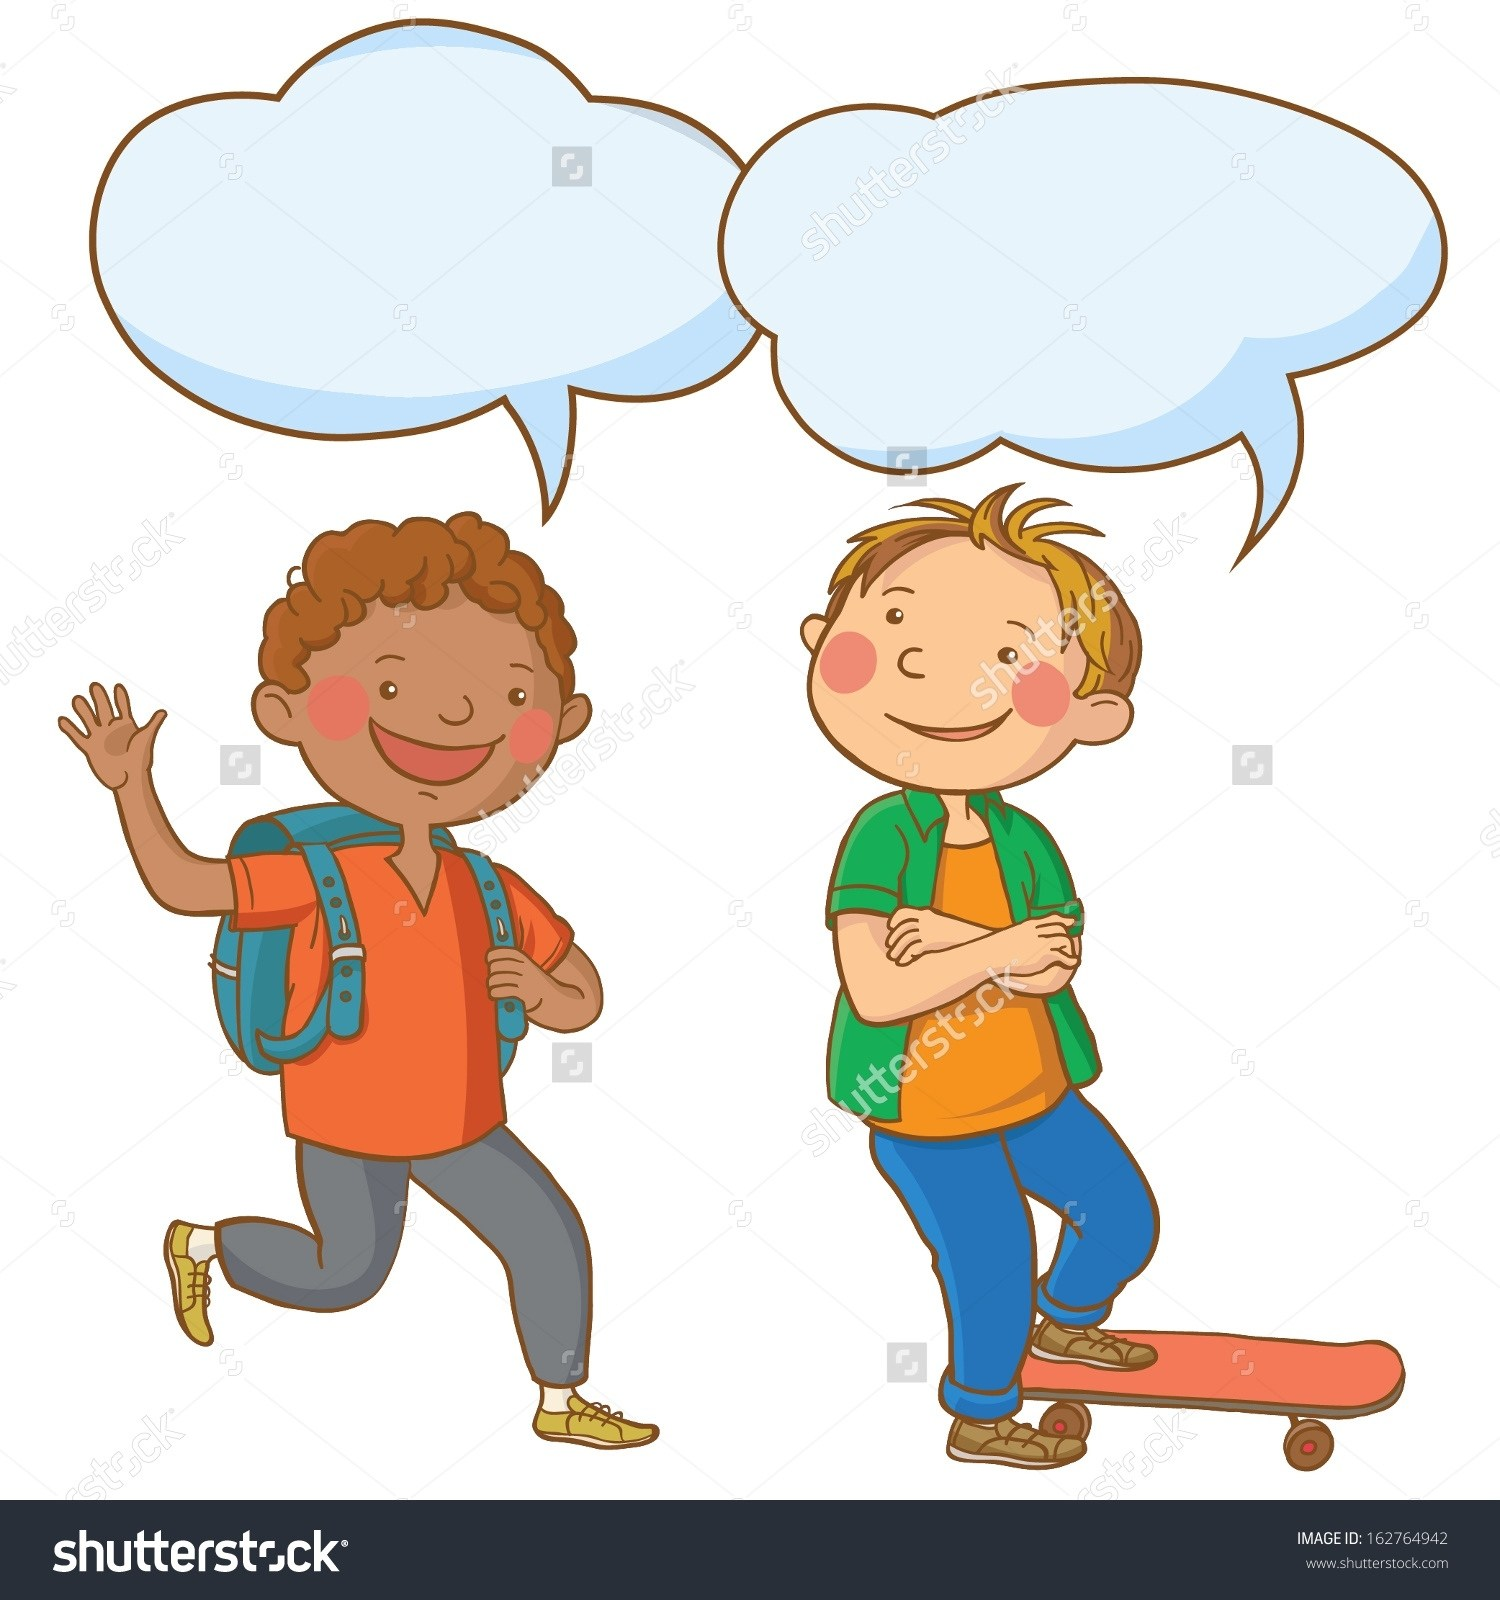 graphic transparent download Collection of free conversationed. Kids talking clipart